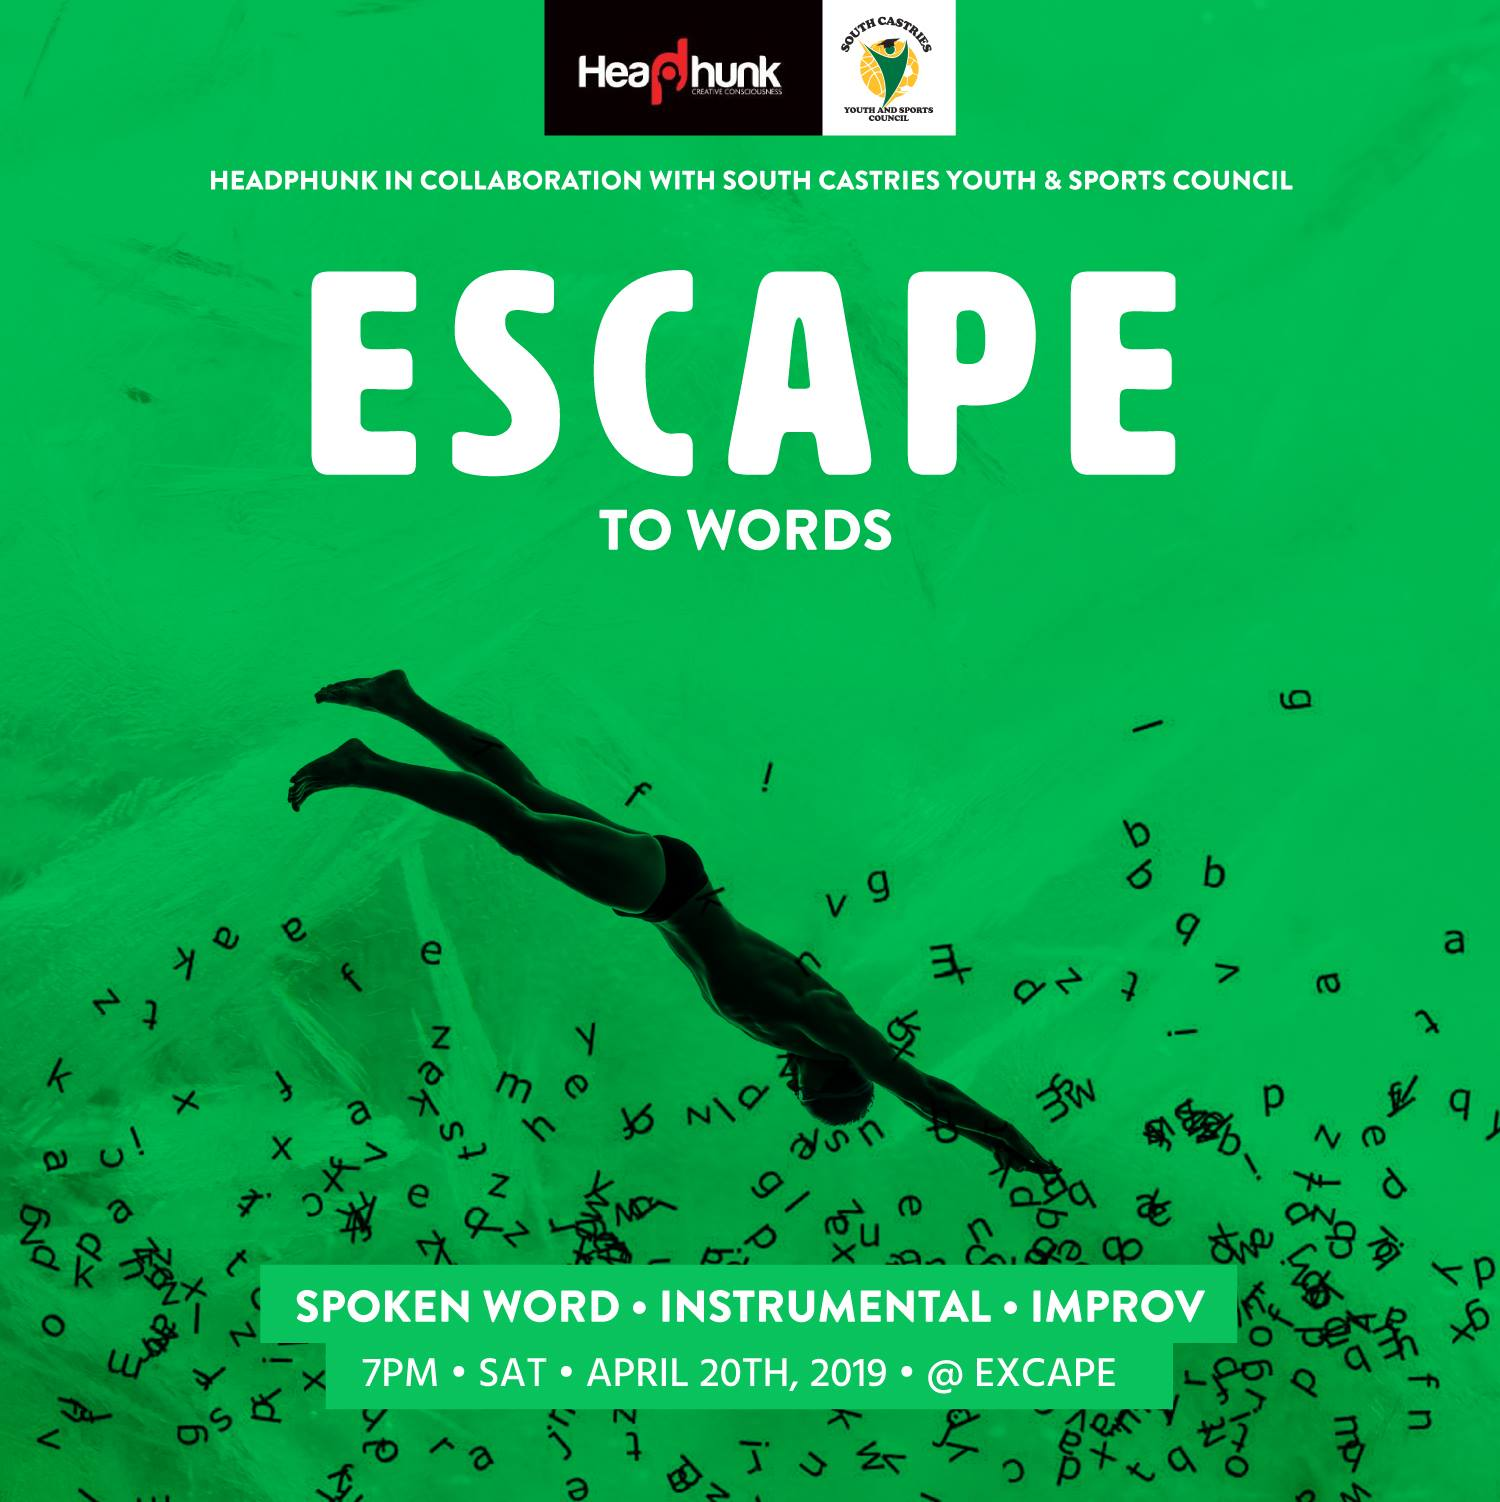 headphunk spoken word instrumental improv - headphunk is back - saint lucia poets and performers present Escape to words